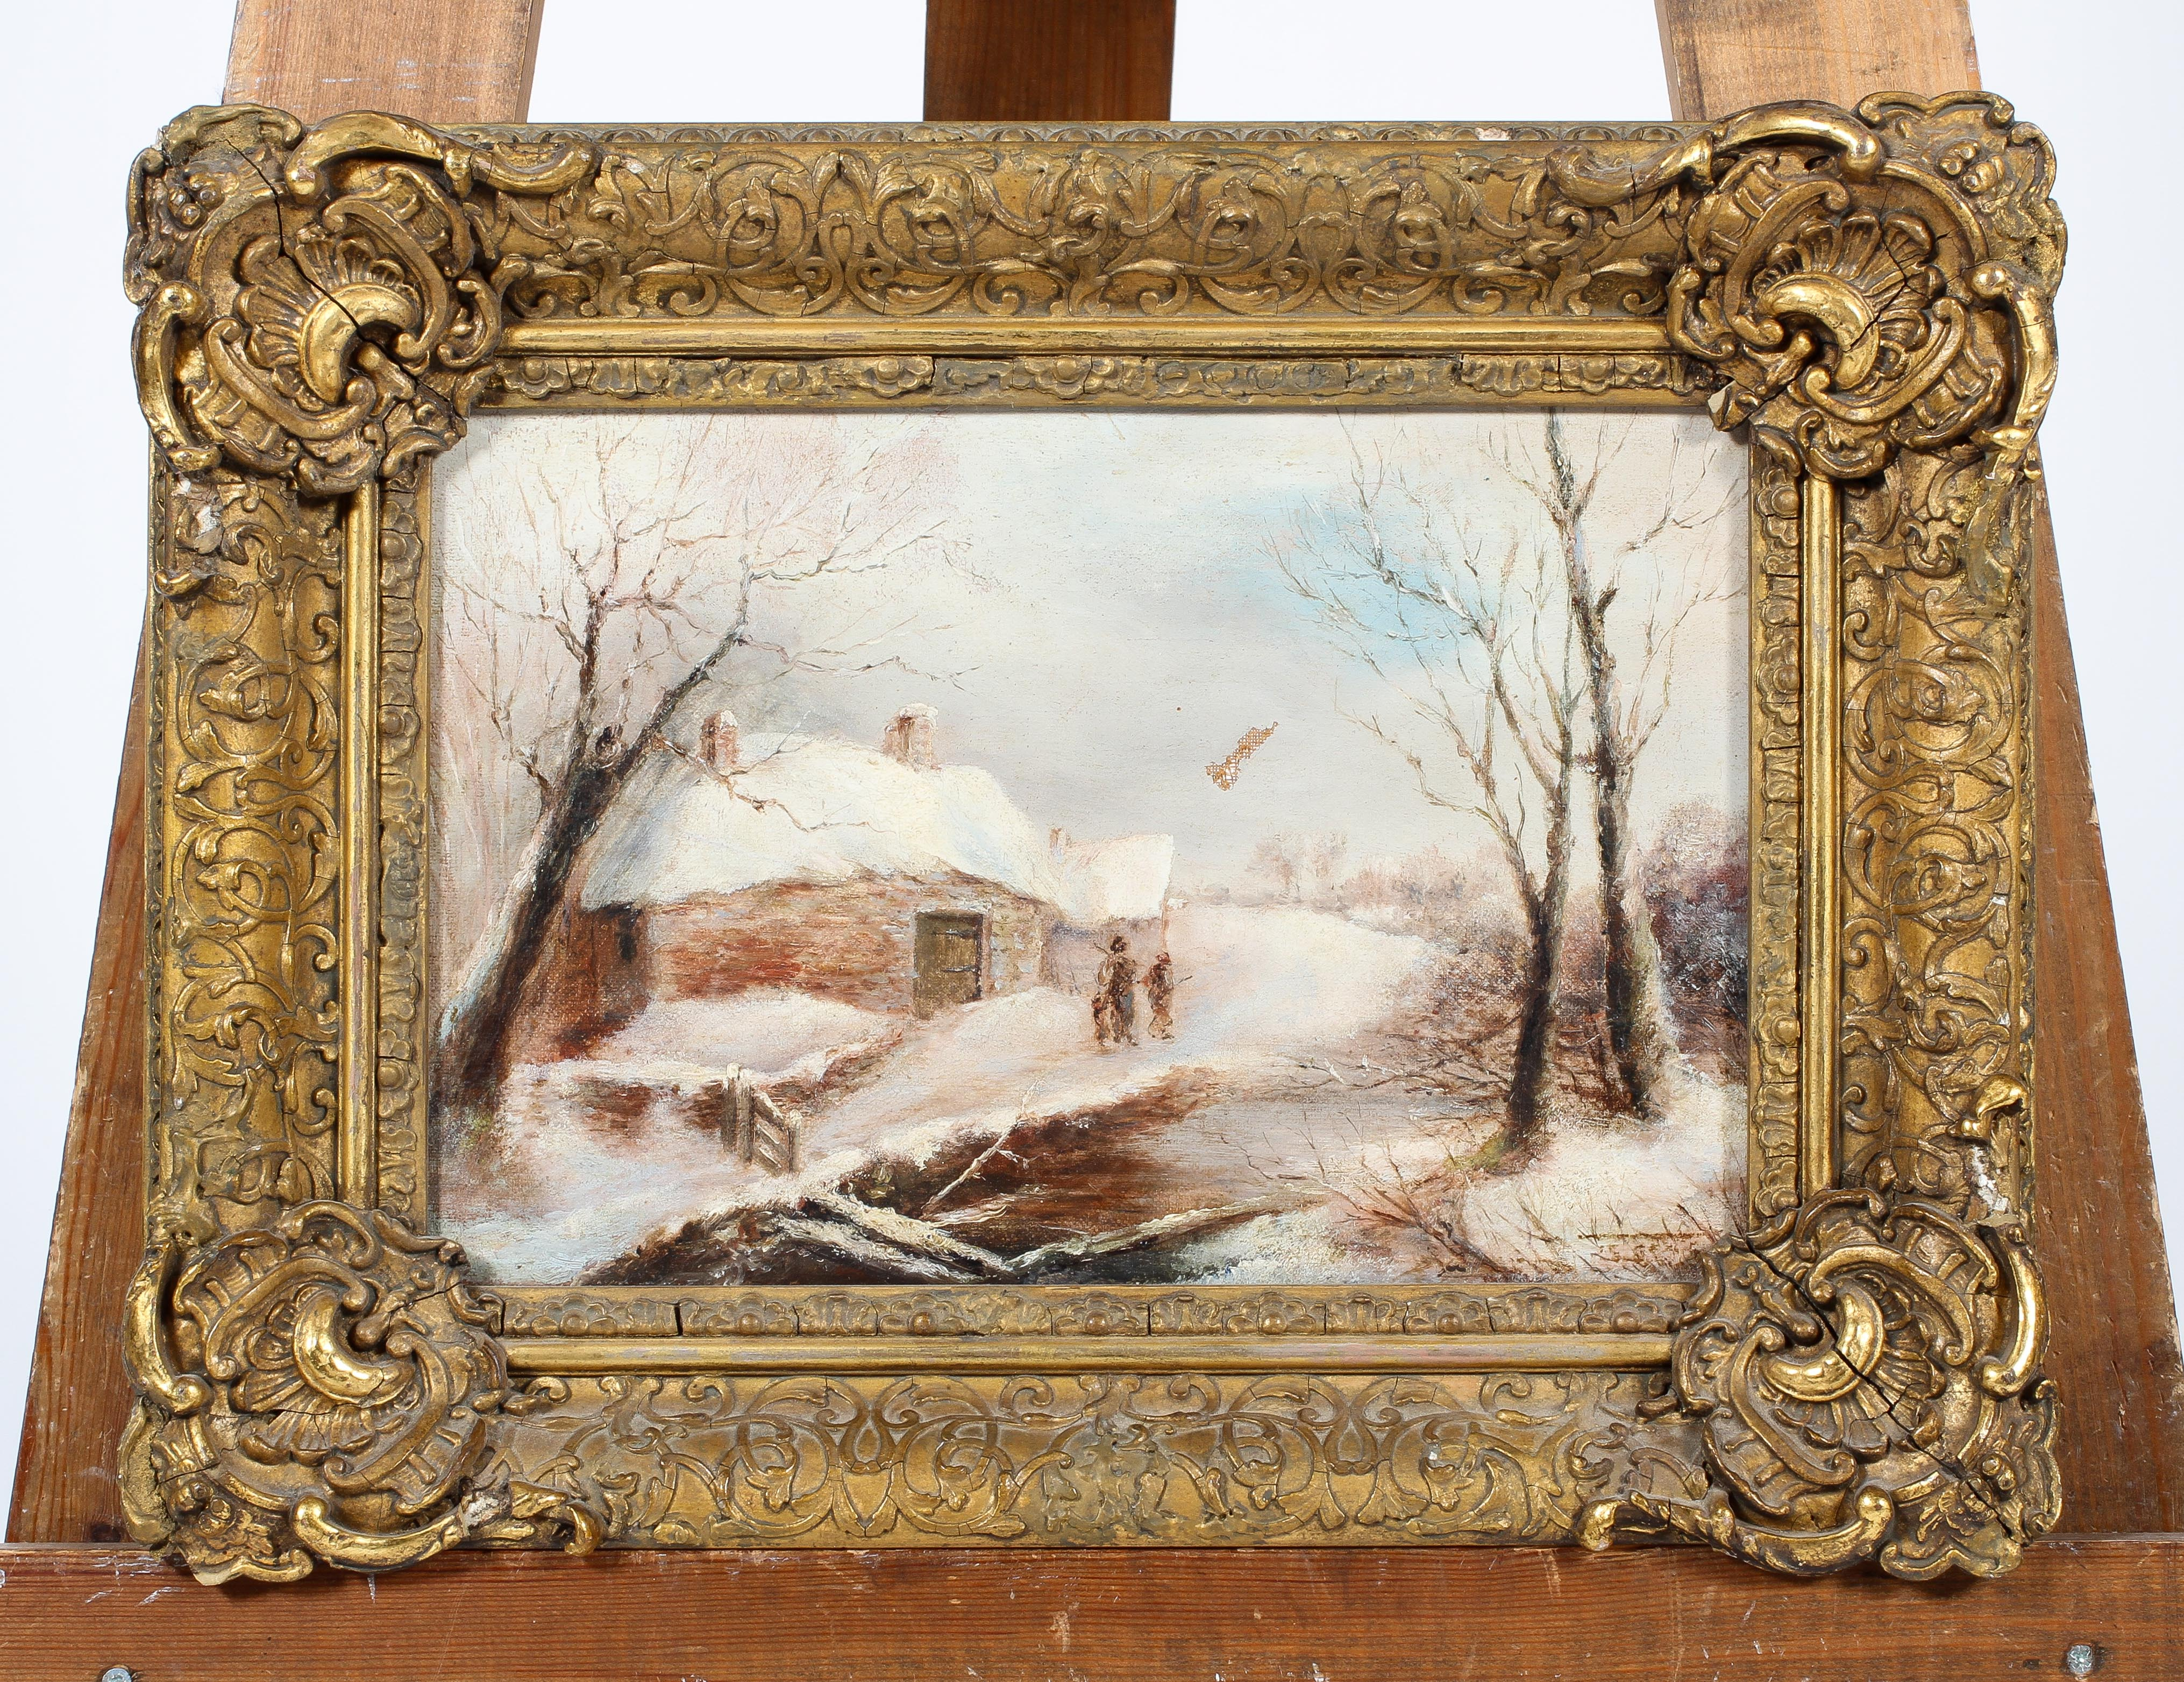 George Turner, Breadsall, Derbyshire - a snowy scene, oil on canvas, signed lower right, - Image 2 of 4